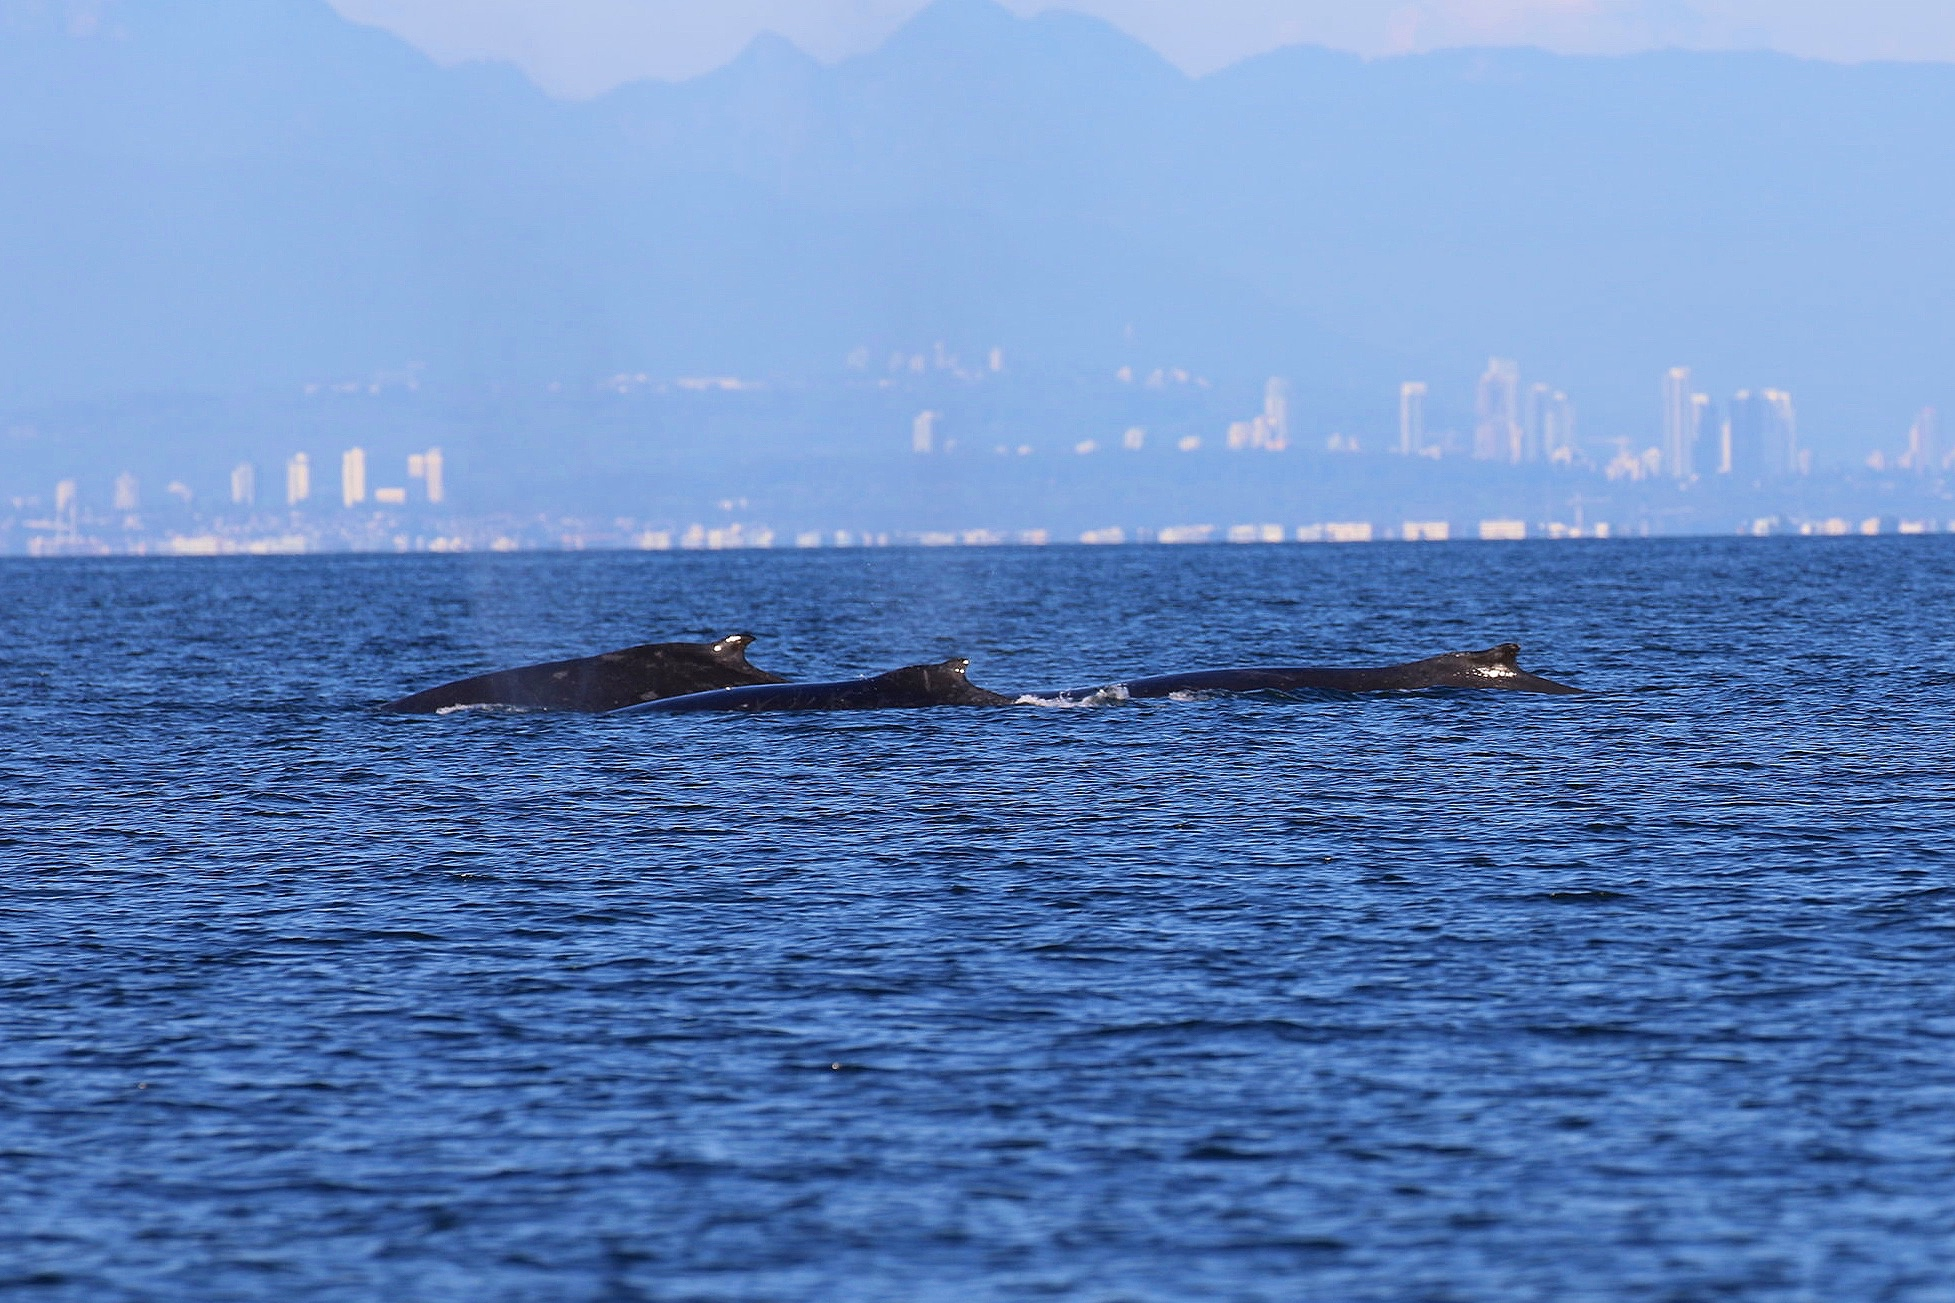 Slate, Slate's calf, and Orion; a trio of Humpbacks! Photo by Natalie Reichenbacher (3:30).